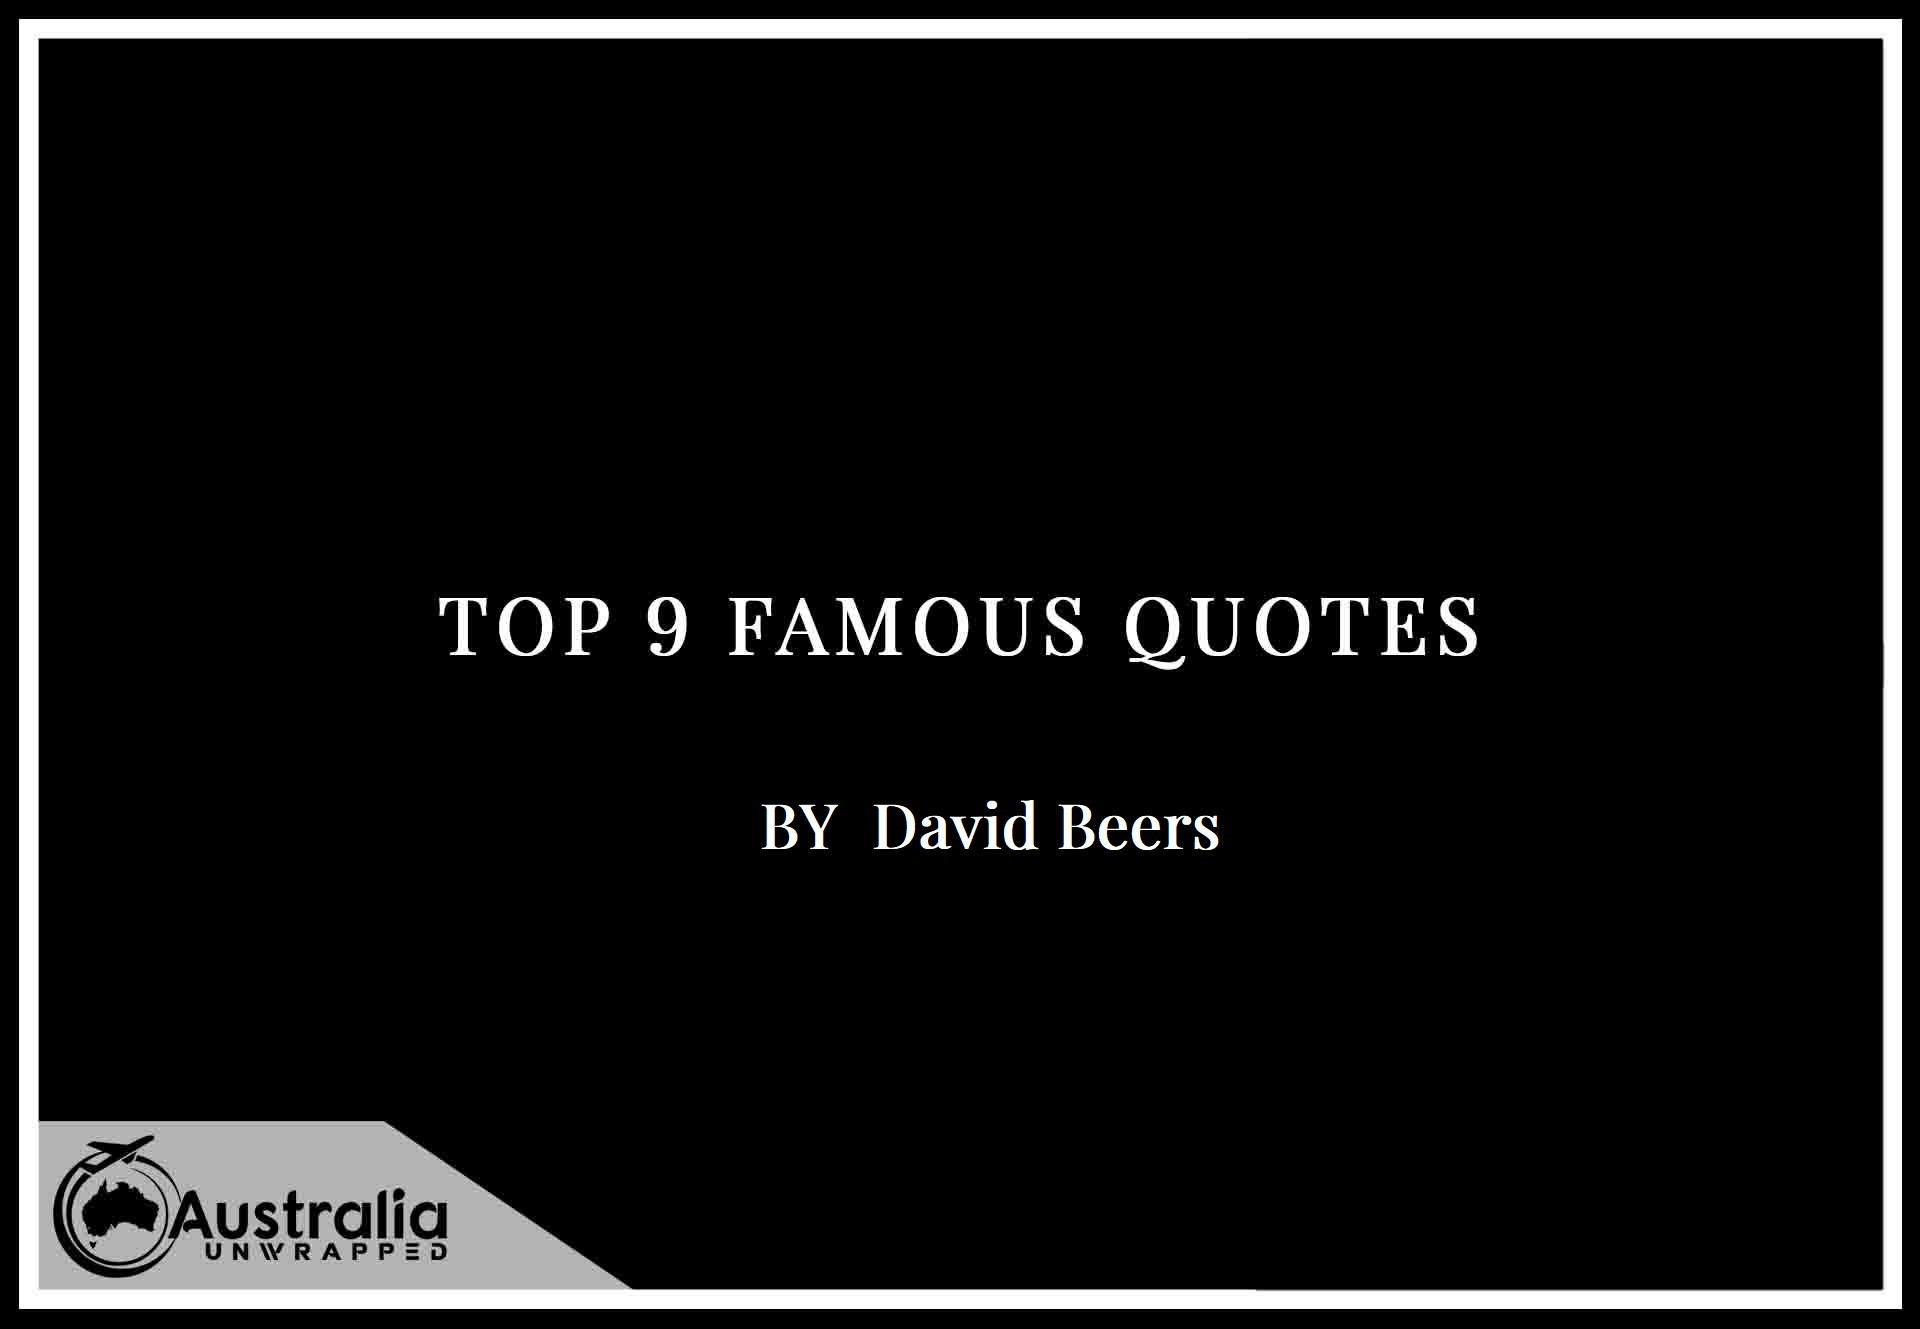 Top 9 Famous Quotes by Author David Beers